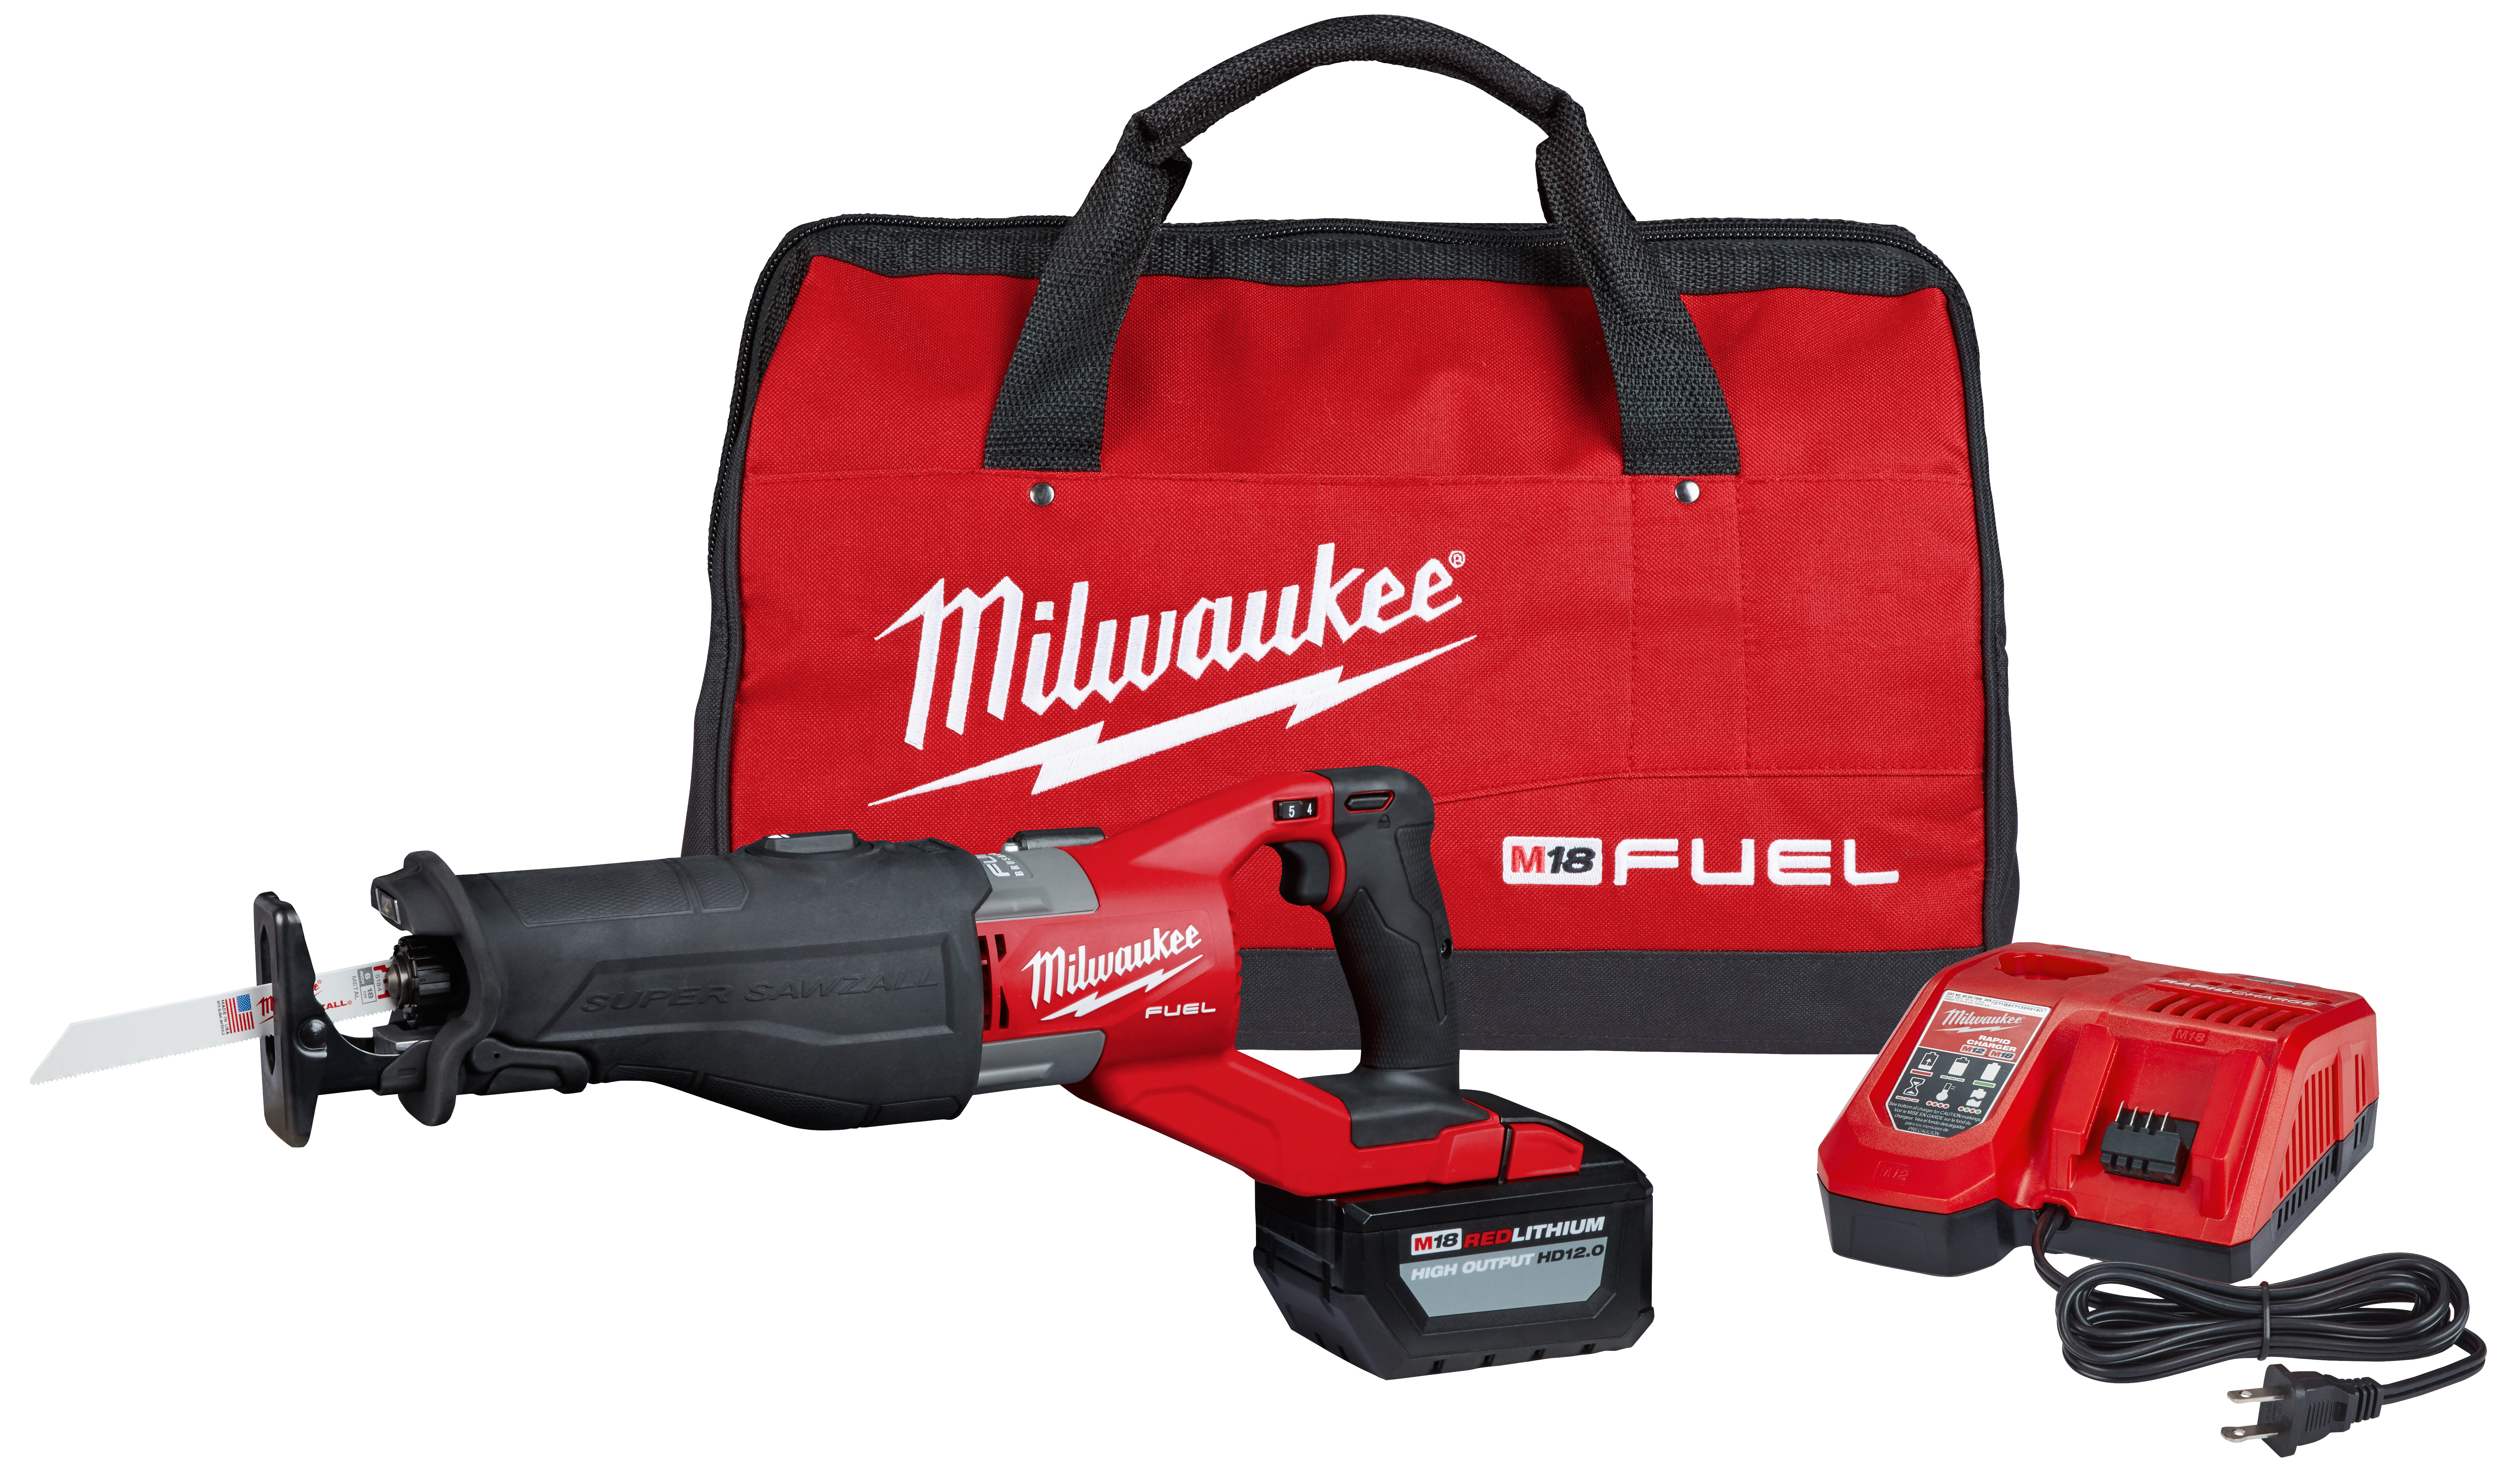 Milwaukee® 2722-21HD M18 FUEL™ SUPER SAWZALL® Cordless Reciprocating Saw Kit, 1-1/4 in L Stroke, 0 to 3000 spm, Orbital Cut, 18 VDC, 18.9 in OAL